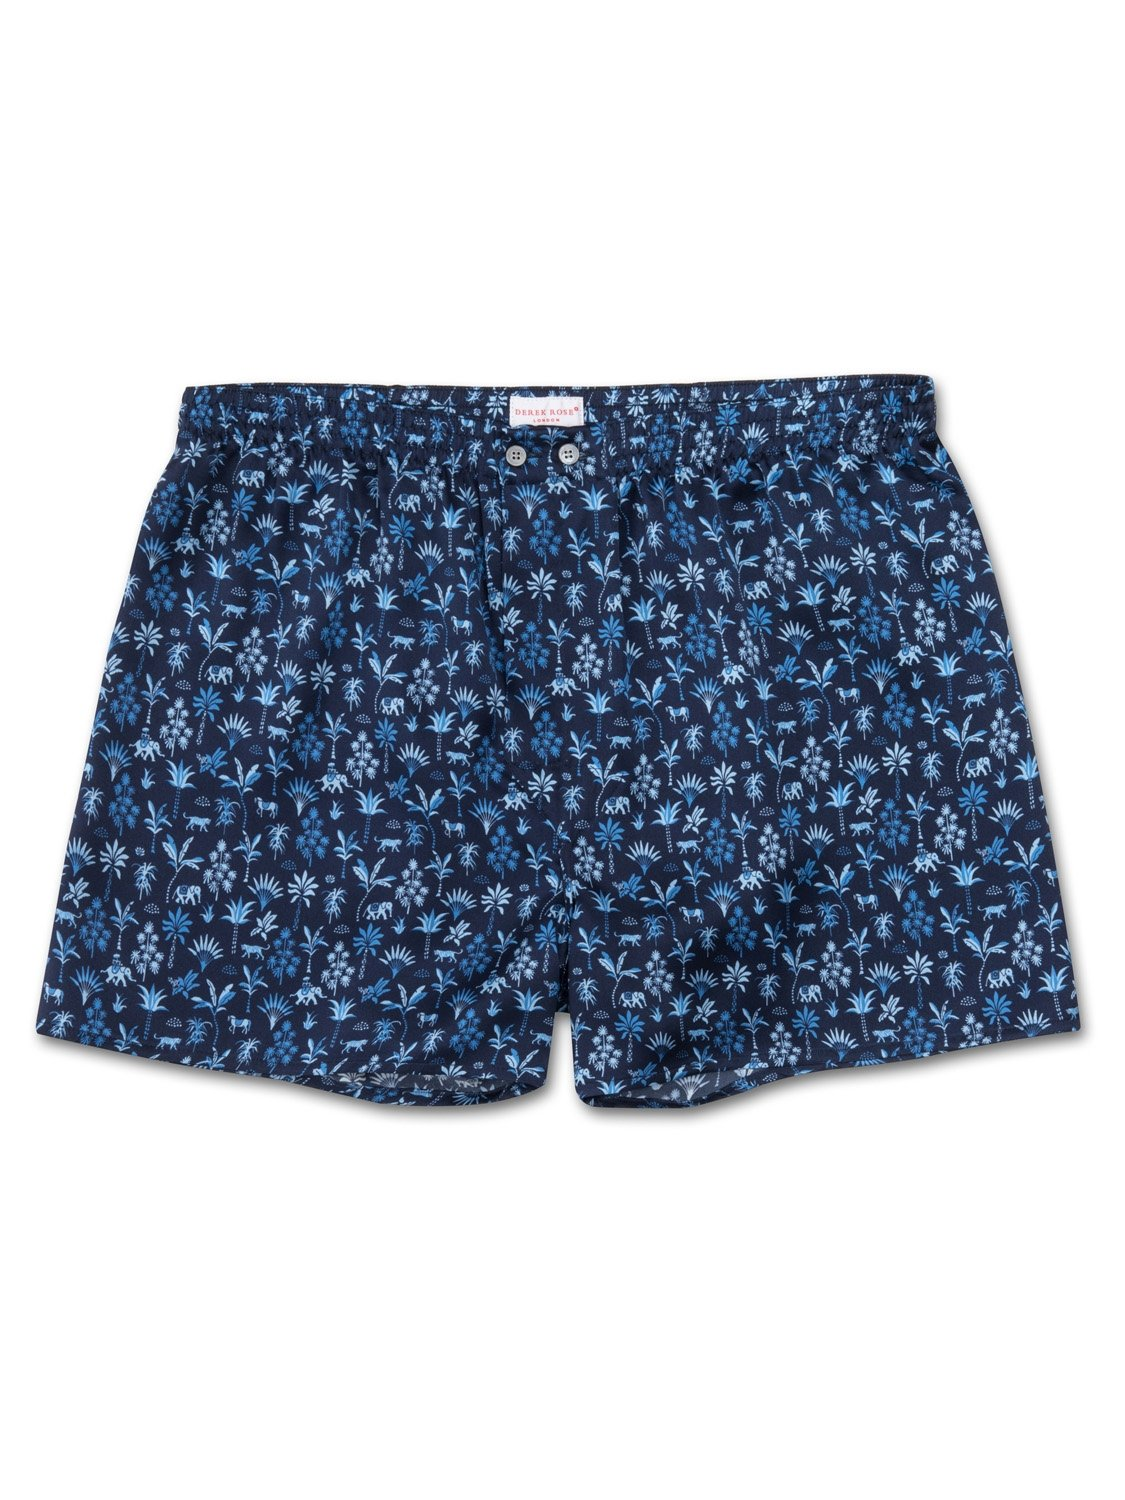 Men's Classic Fit Boxer Shorts Brindisi 23 Pure Silk Satin Navy